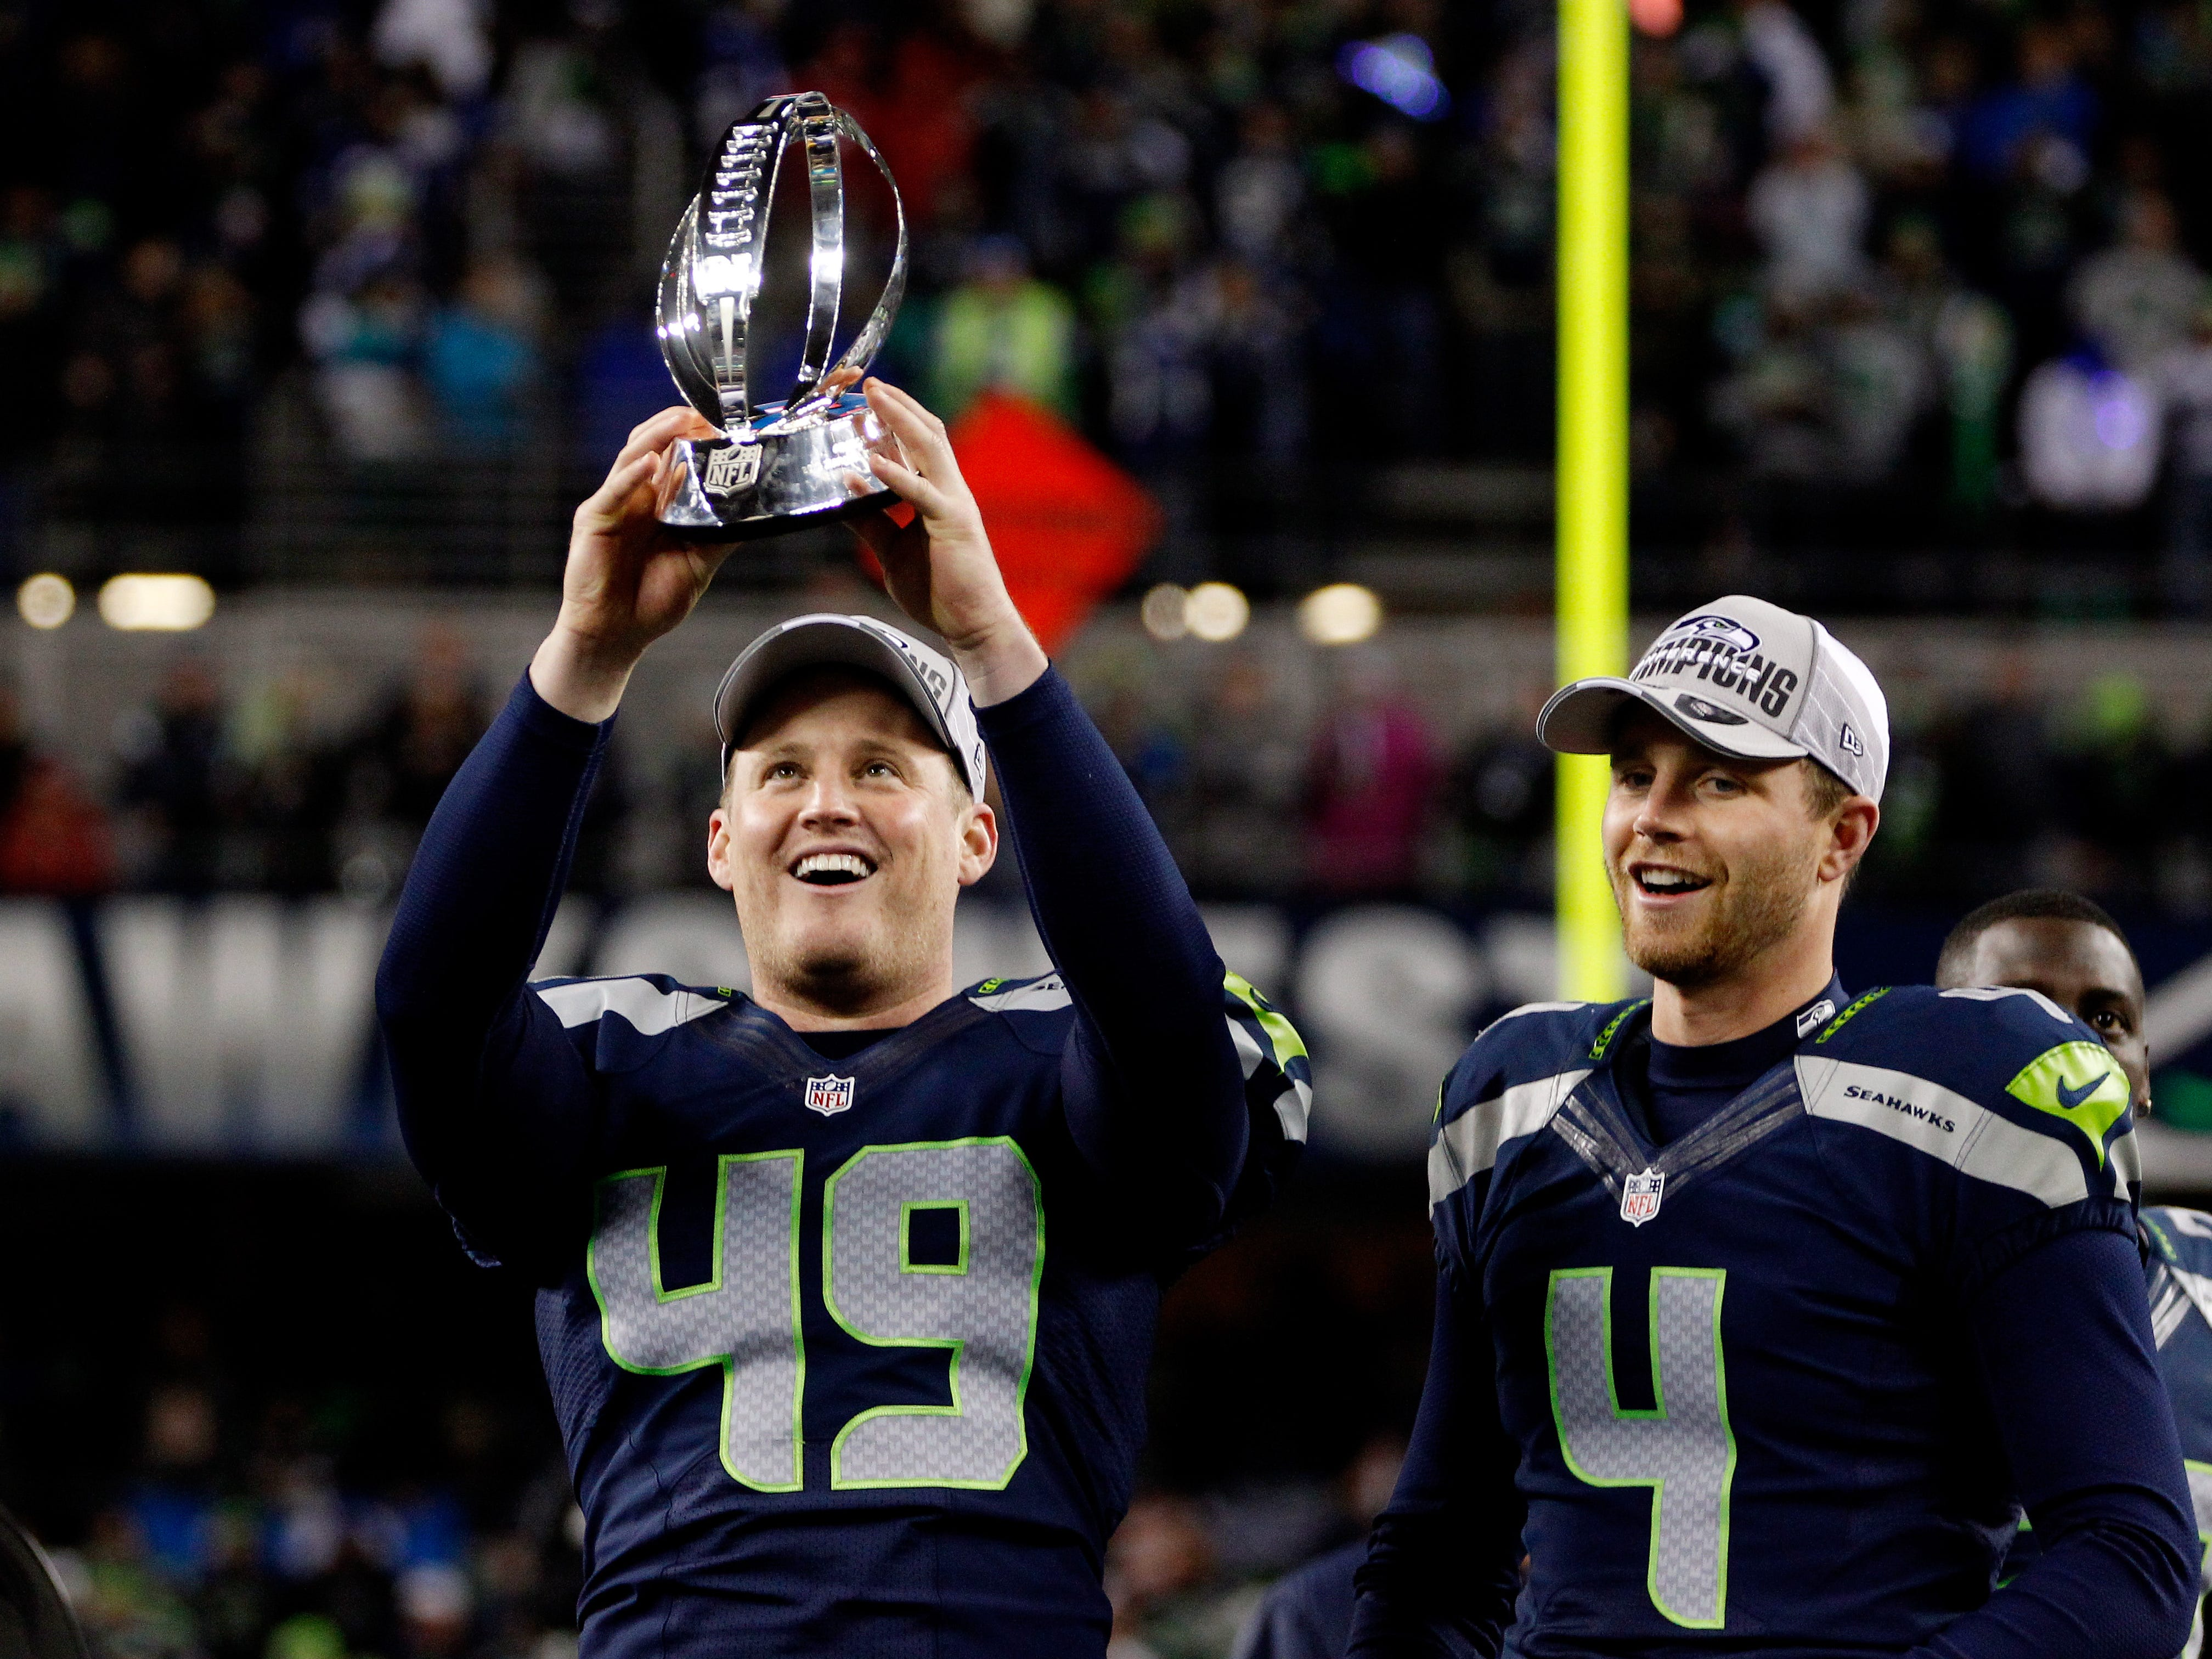 Clint Gresham #49 and kicker Steven Hauschka #4 of the Seattle Seahawks celebrate with the George Halas Trophy after the Seahawks 23-17 victory against the San Francisco 49ers during the 2014 NFC Championship at CenturyLink Field on January 19, 2014 in Seattle, Washington.  (Photo by Otto Greule Jr/Getty Images)